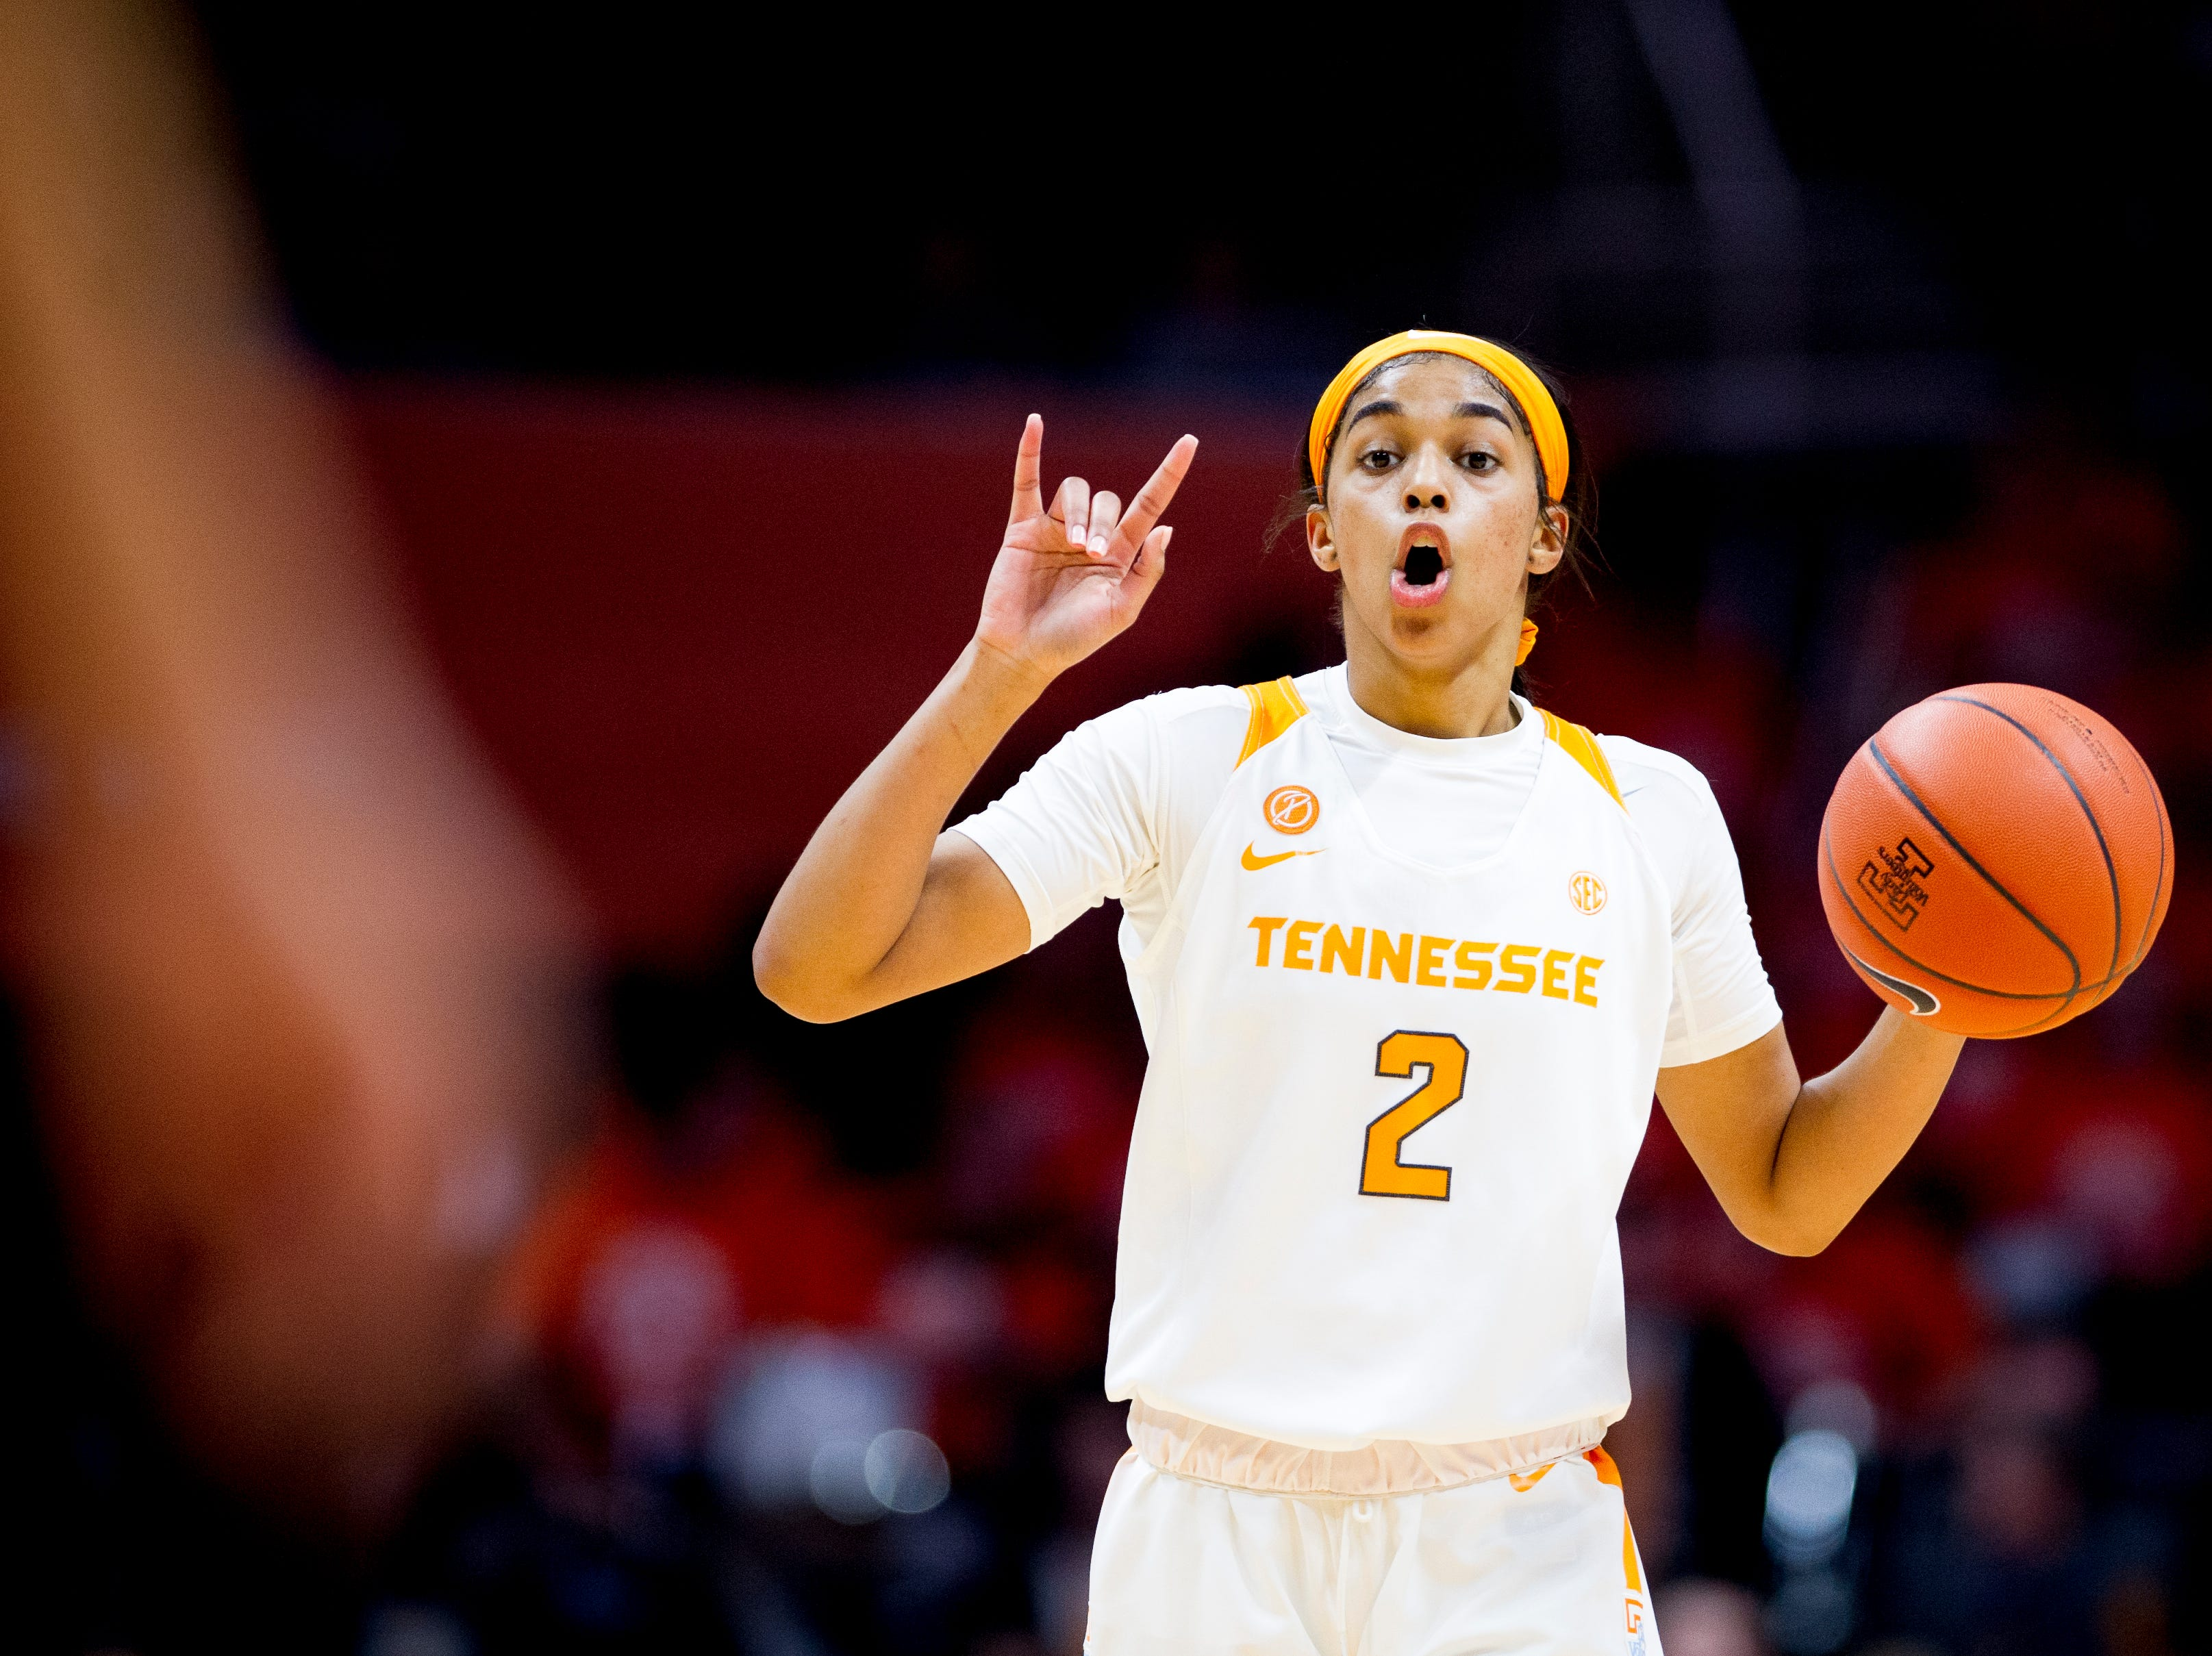 Tennessee guard Evina Westbrook (2) calls down the court during a game between Tennessee and Notre Dame at Thompson-Boling Arena in Knoxville, Tennessee on Thursday, January 24, 2019.